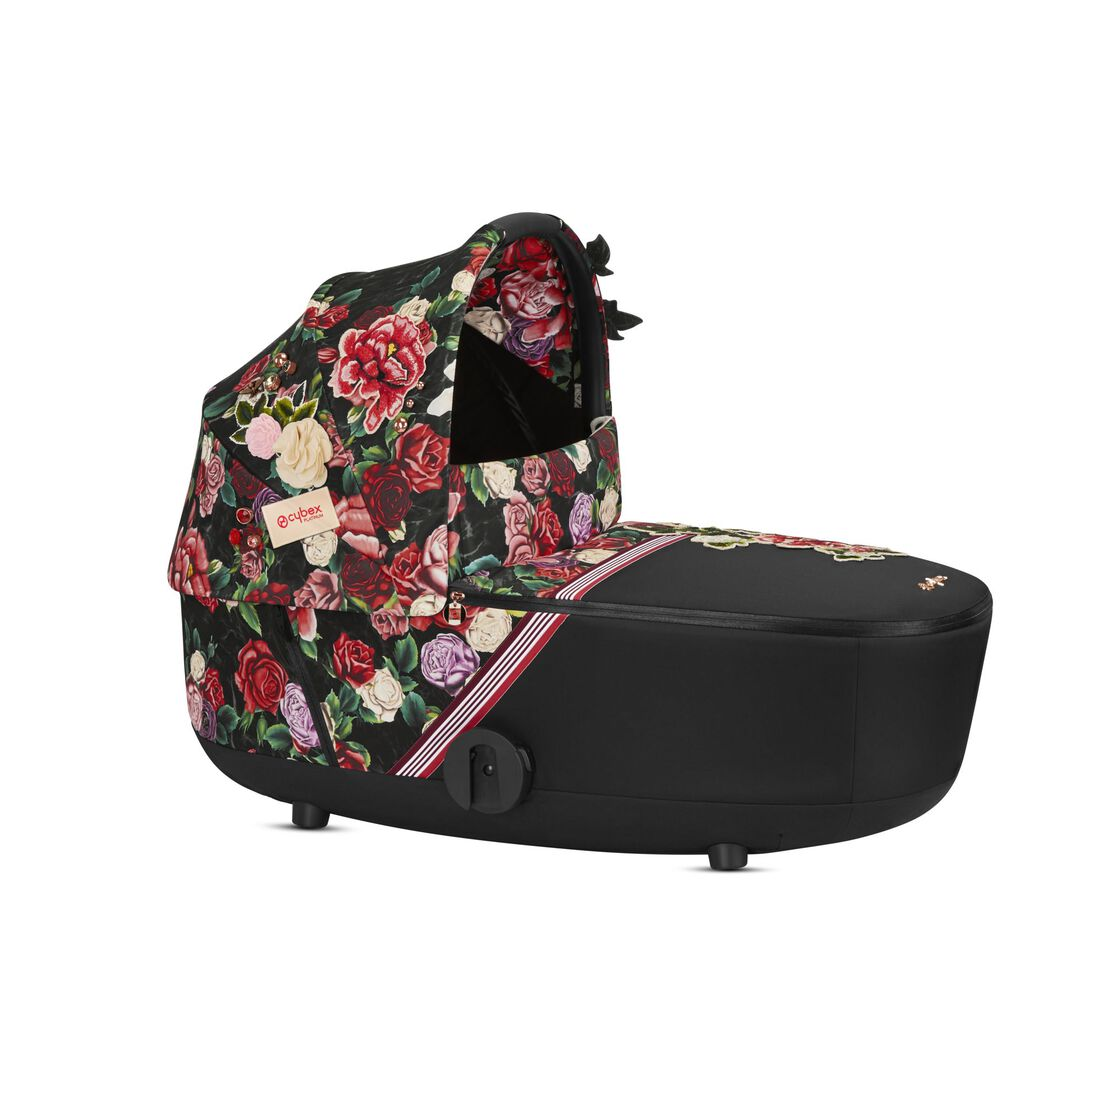 CYBEX Mios Lux Carry Cot - Spring Blossom Dark in Spring Blossom Dark large image number 1